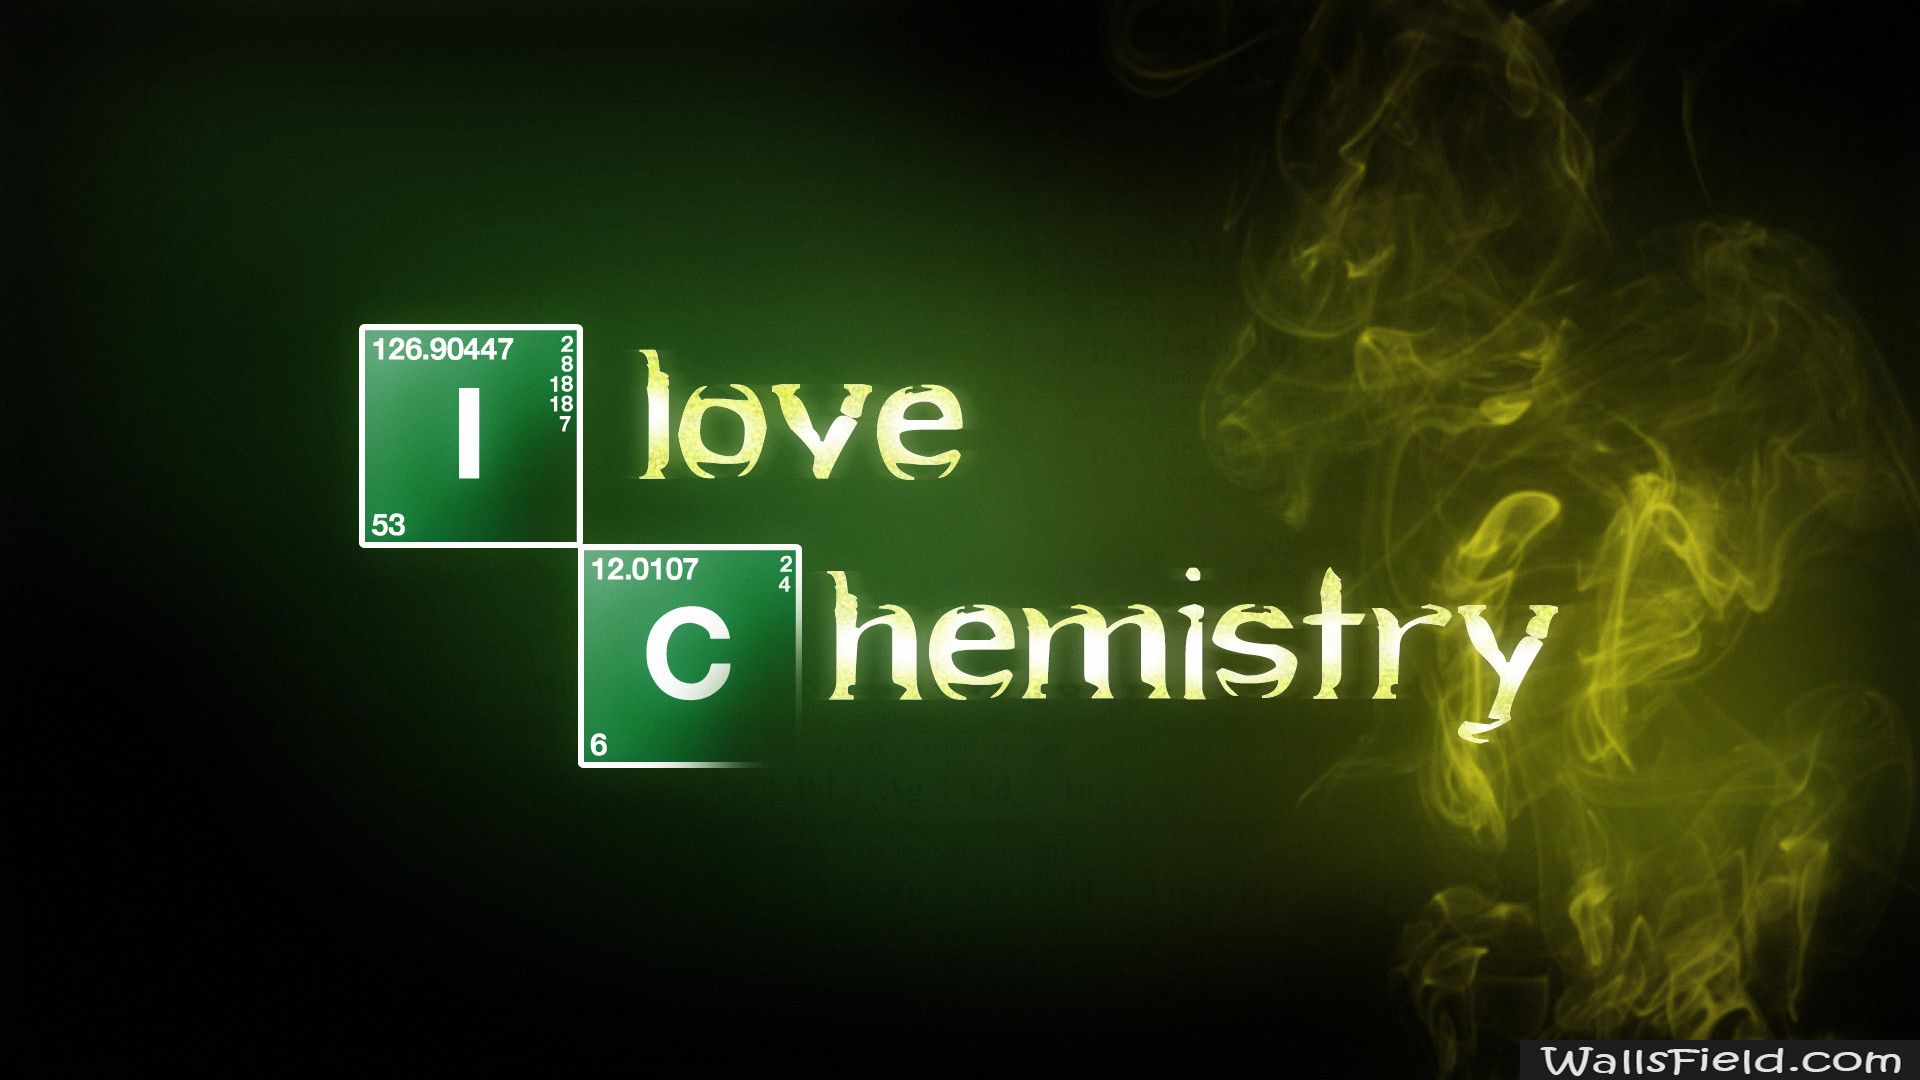 1920x1080, You Can View, Download And Comment On I - Love Chemistry Breaking Bad - HD Wallpaper